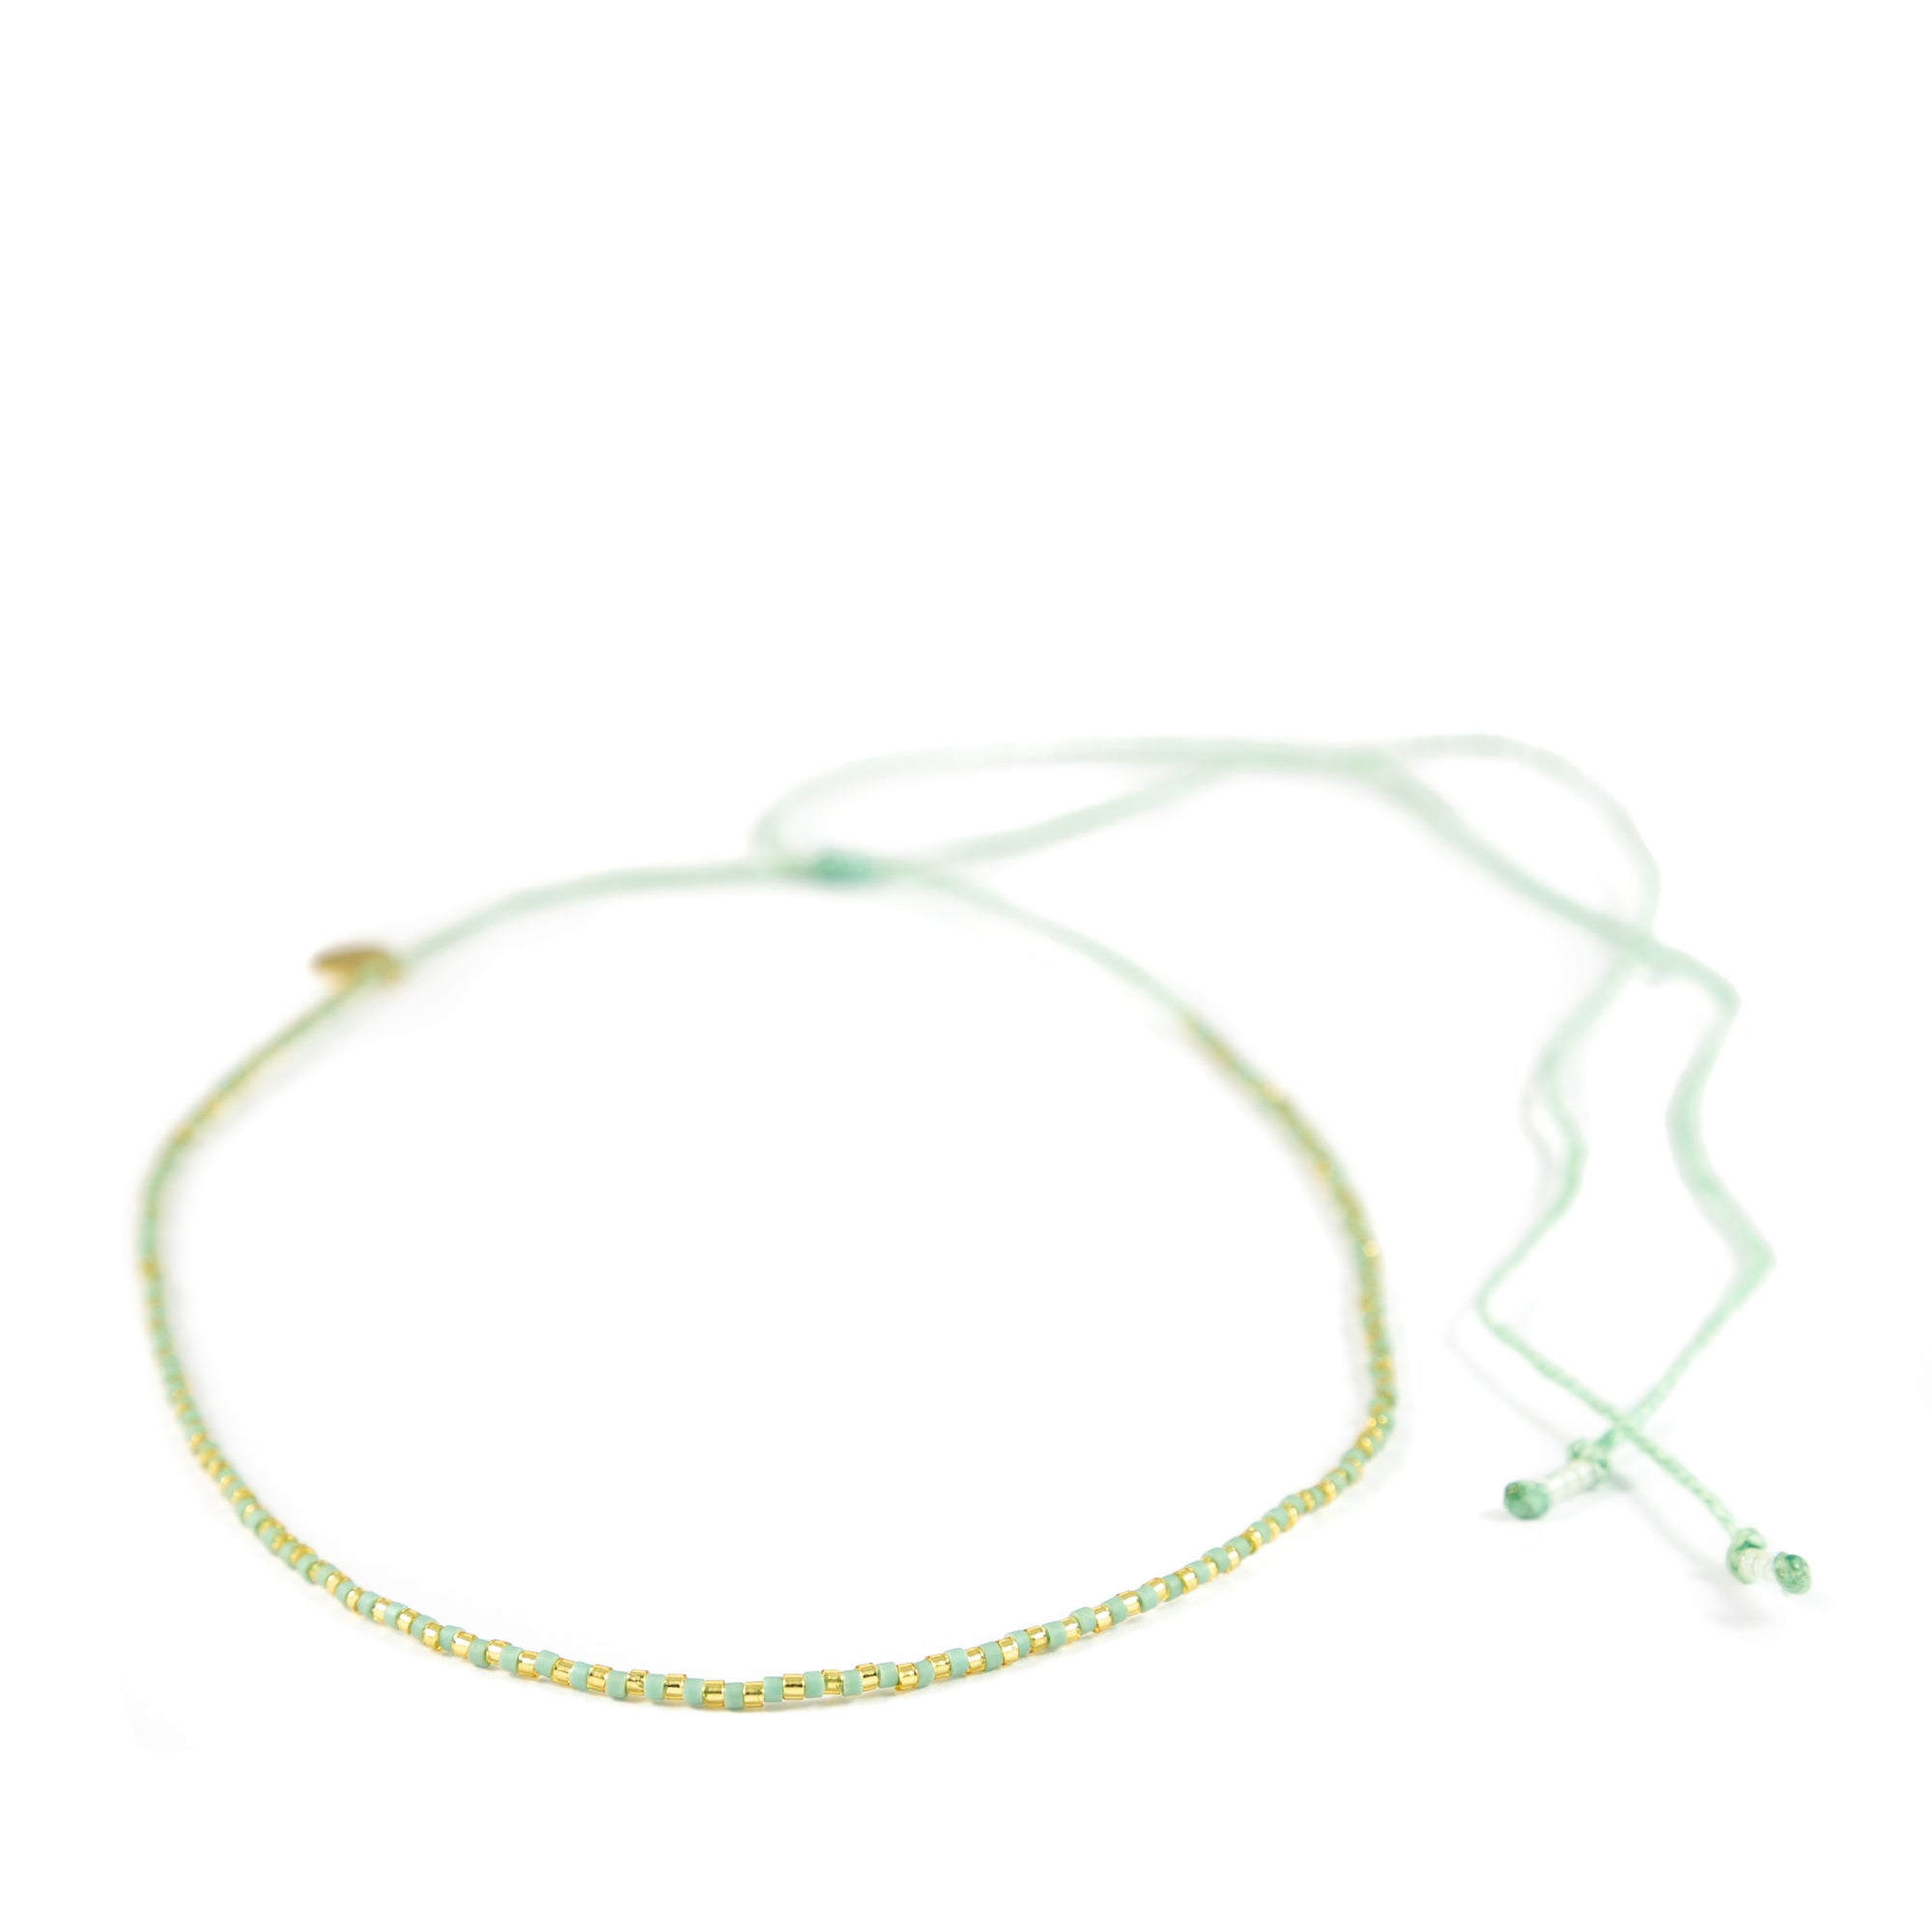 Cucumber & Gold Alternating Memaid Necklace